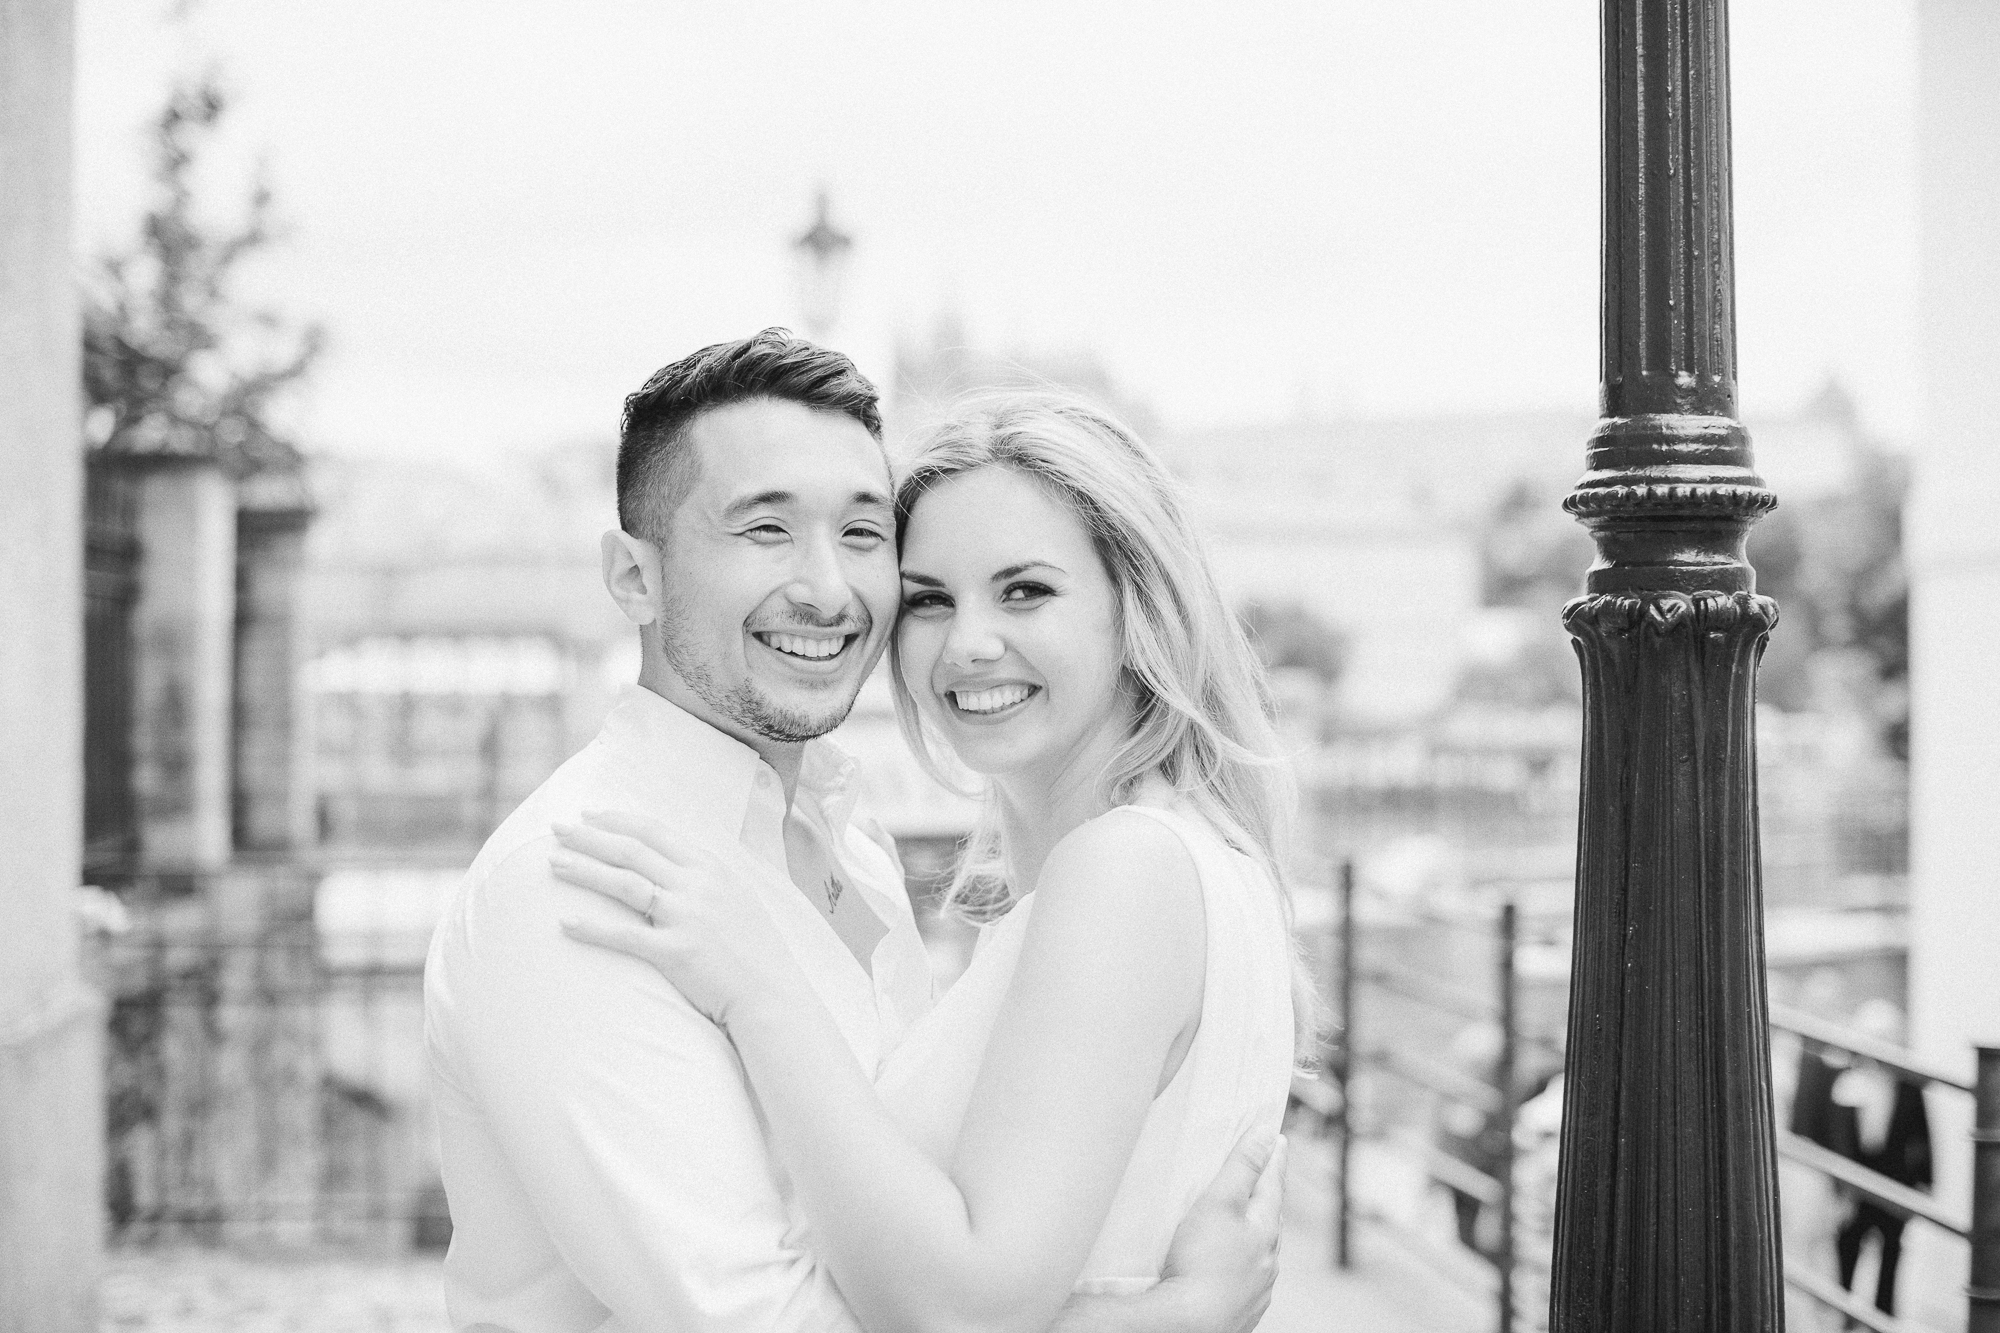 Prague-Wedding-Photography-Matej-Trasak-Engagement-AJ-122.jpg